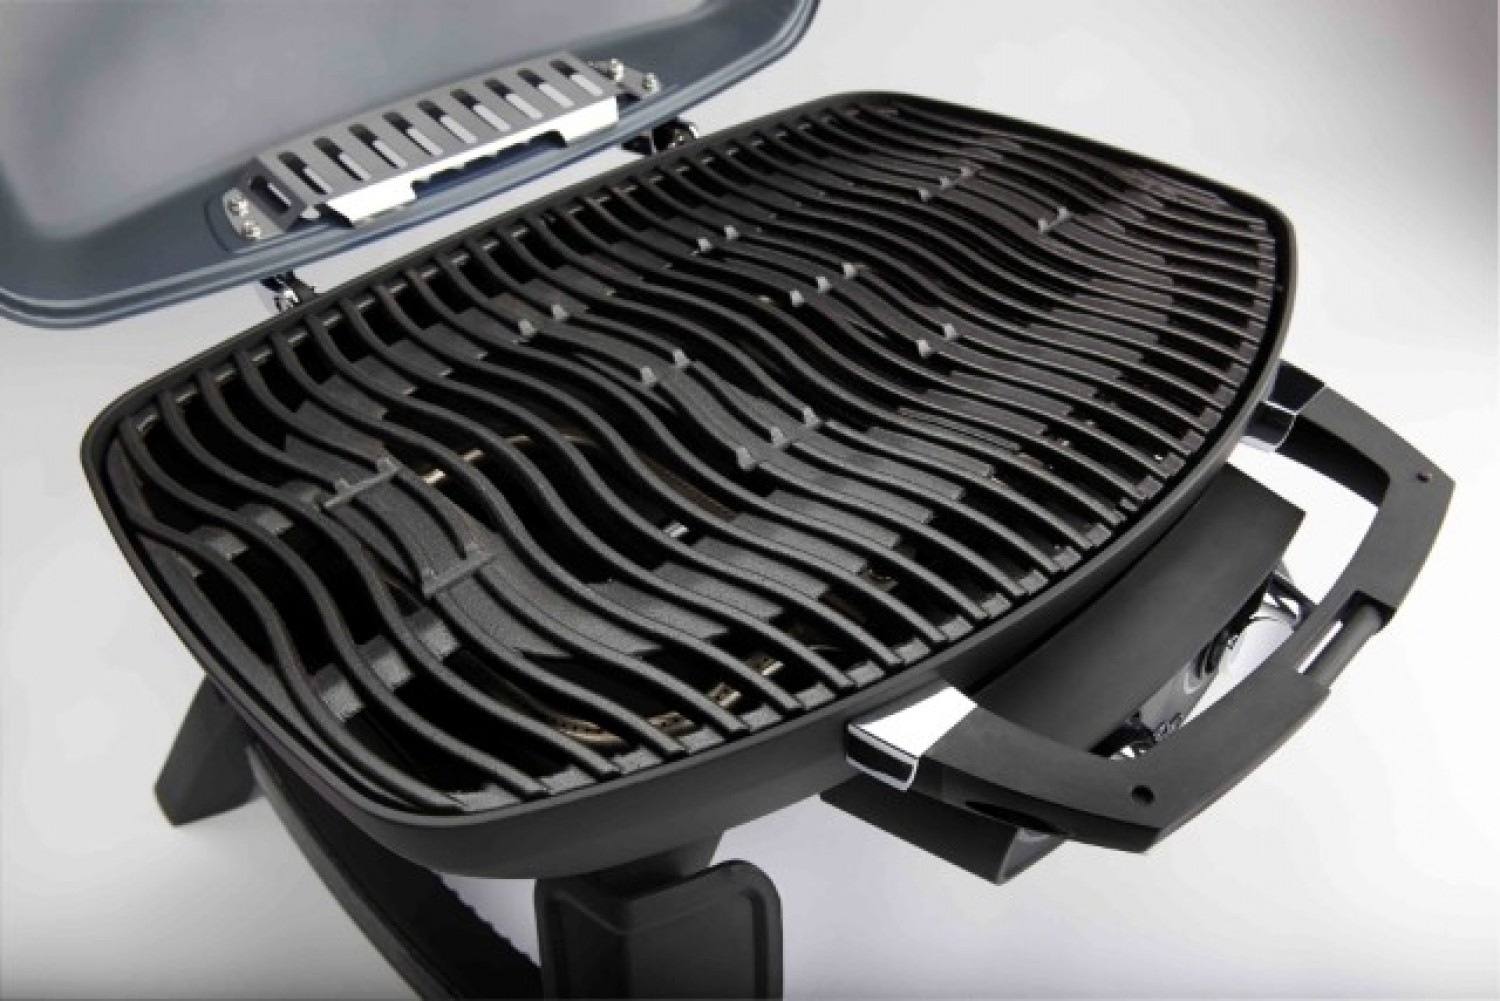 napoleon gasgrill pro 285 bk napoleon gasgrills. Black Bedroom Furniture Sets. Home Design Ideas